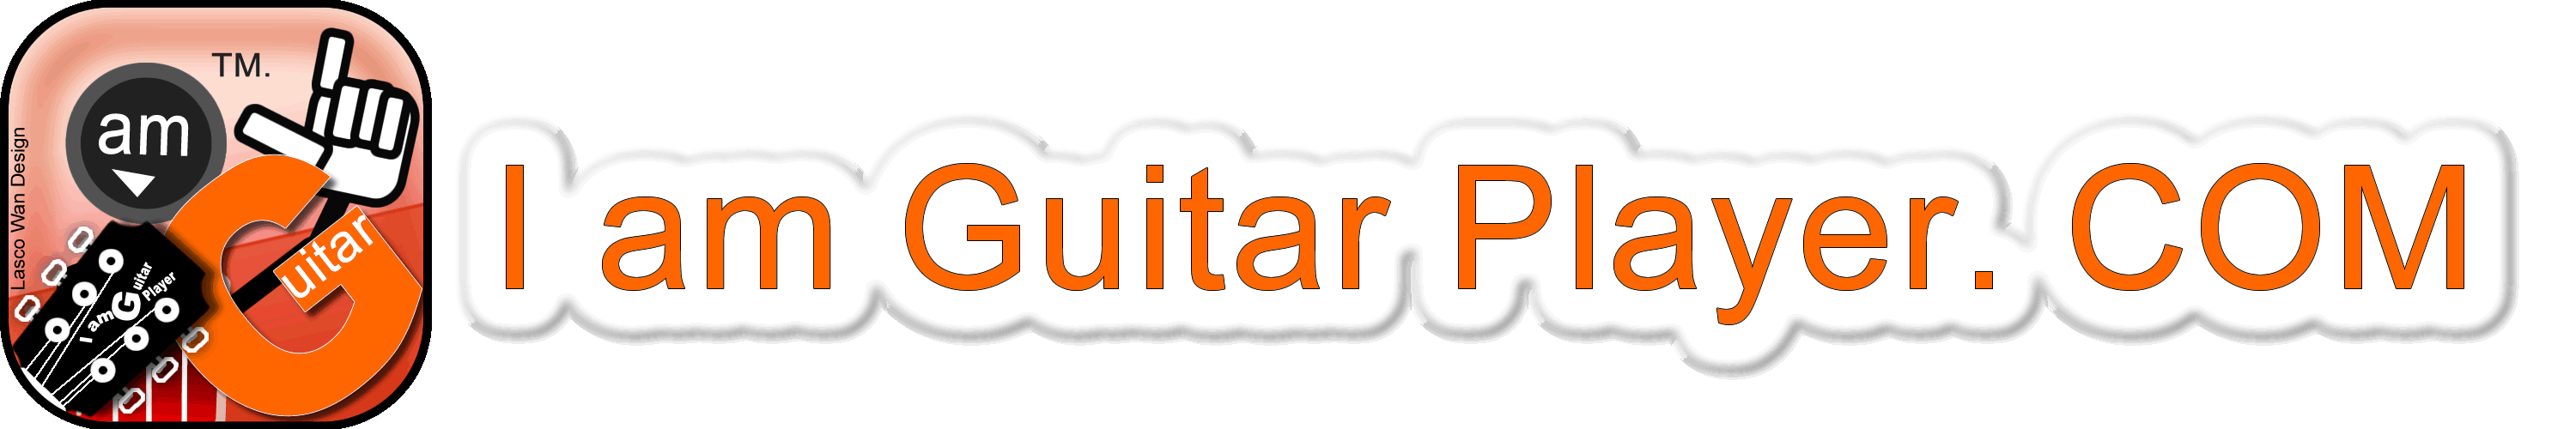 I am Guitar Player .COM